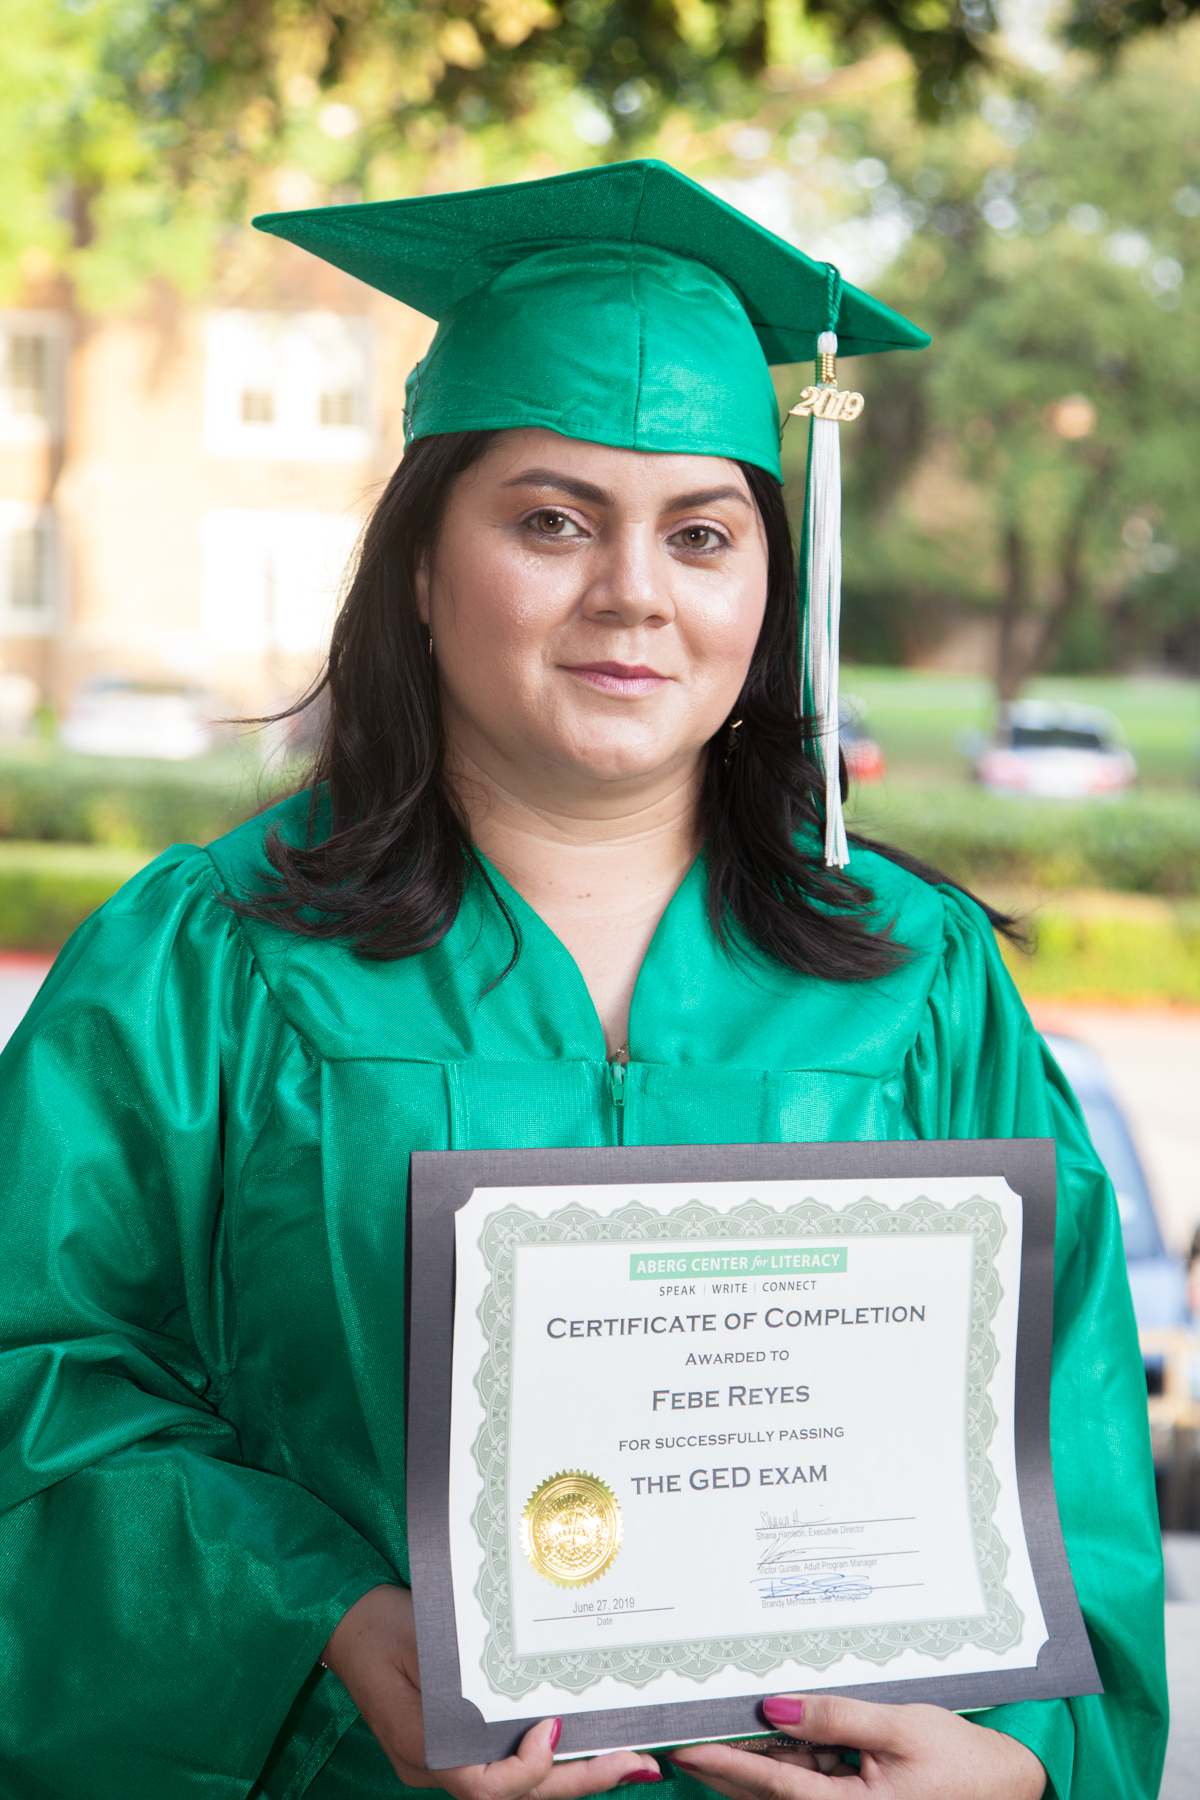 48-Aberg Center for Literacy - June 2019 Graduation.jpg